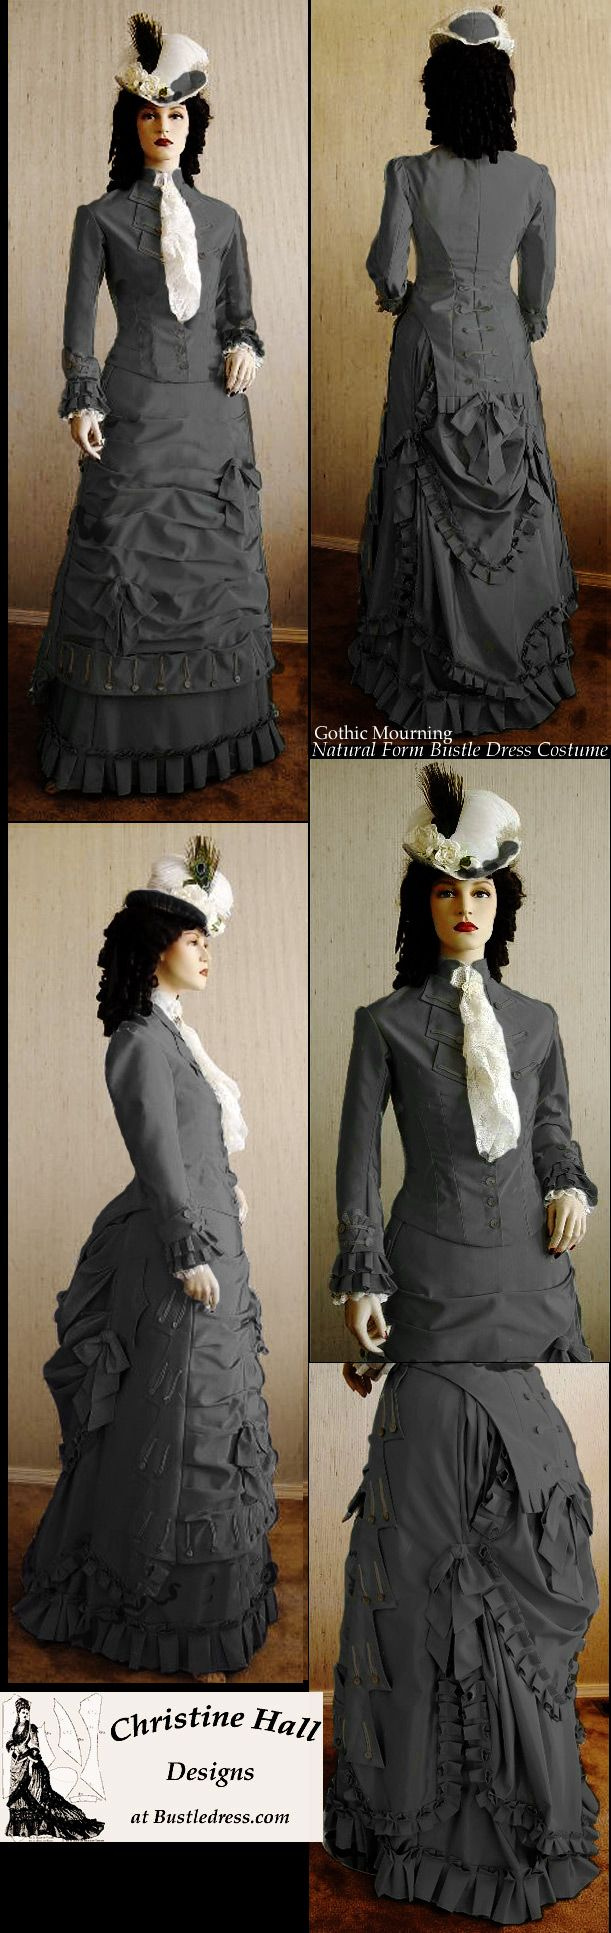 Natural Form: SASS GOTHIC Mourning 1877 Victorian Natural Form Bustle Dress Costume CUSTOM MADE by Christine Hall